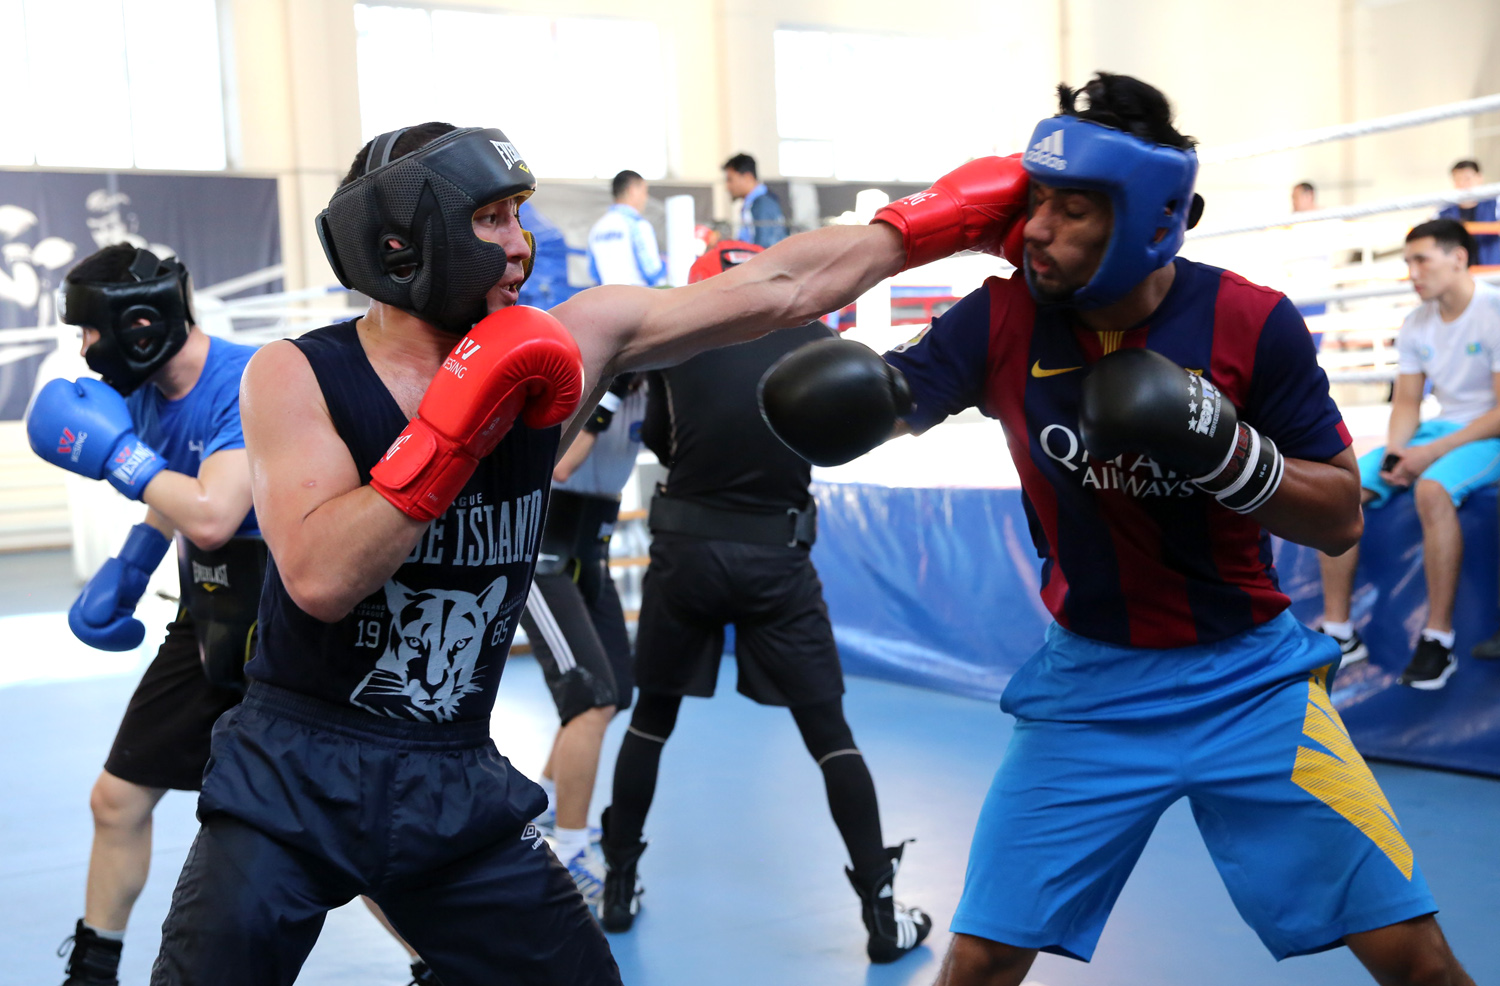 India joined to Kazakhstan to a common training camp in Astana before the ASBC Asian Confederation Boxing Championships